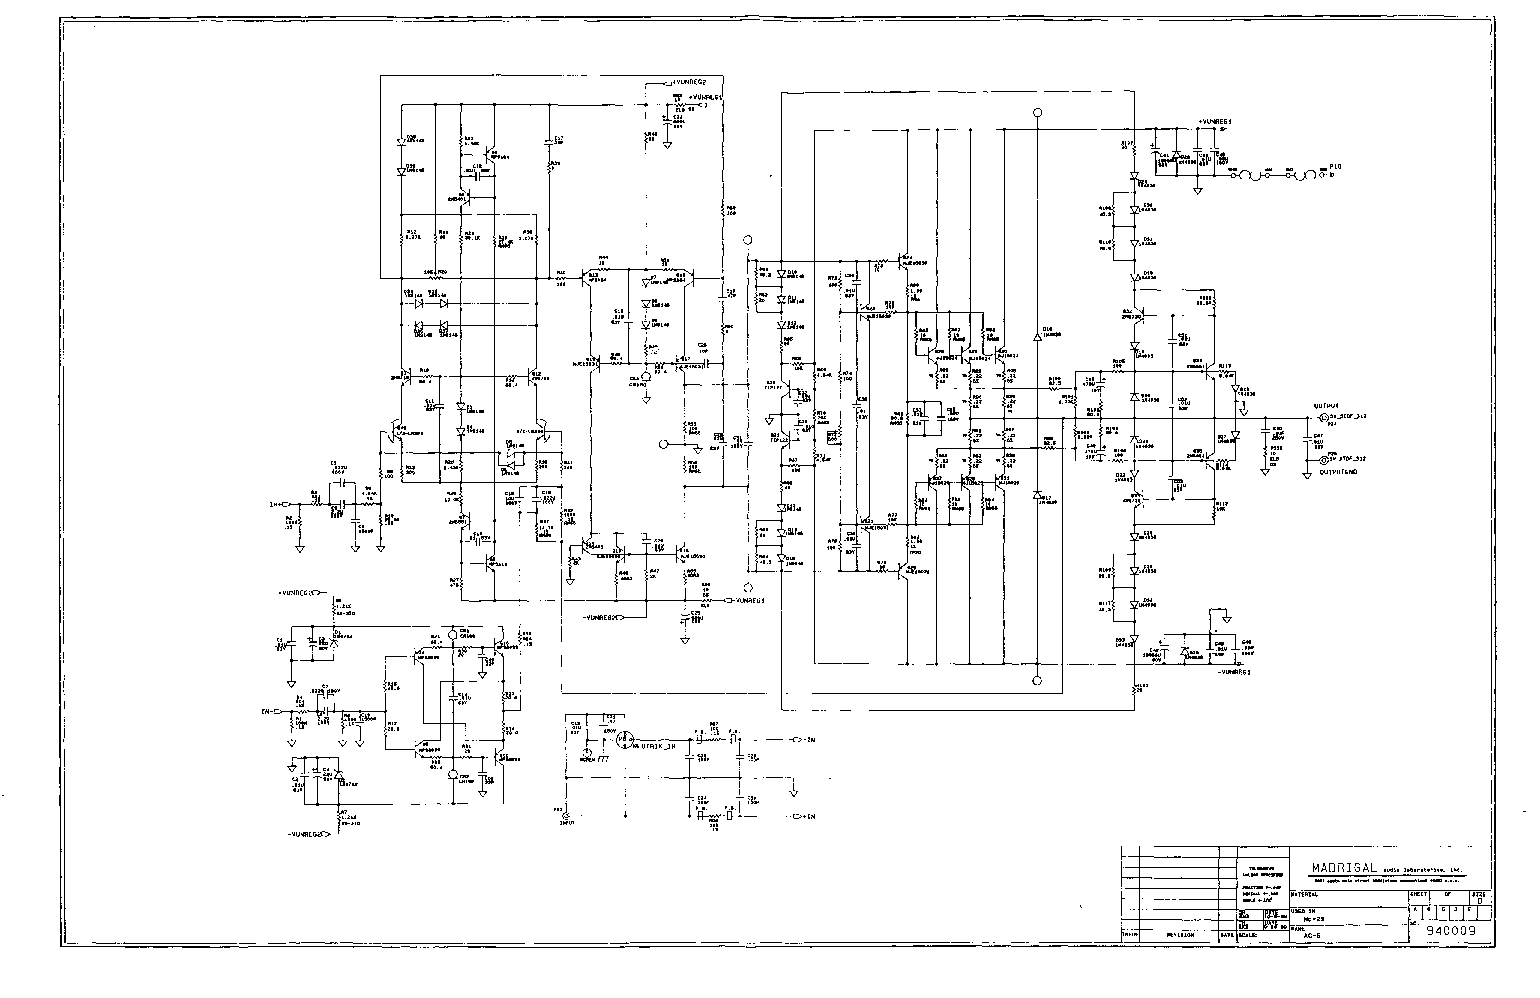 MARK-LEVINSON 29 Service Manual download, schematics